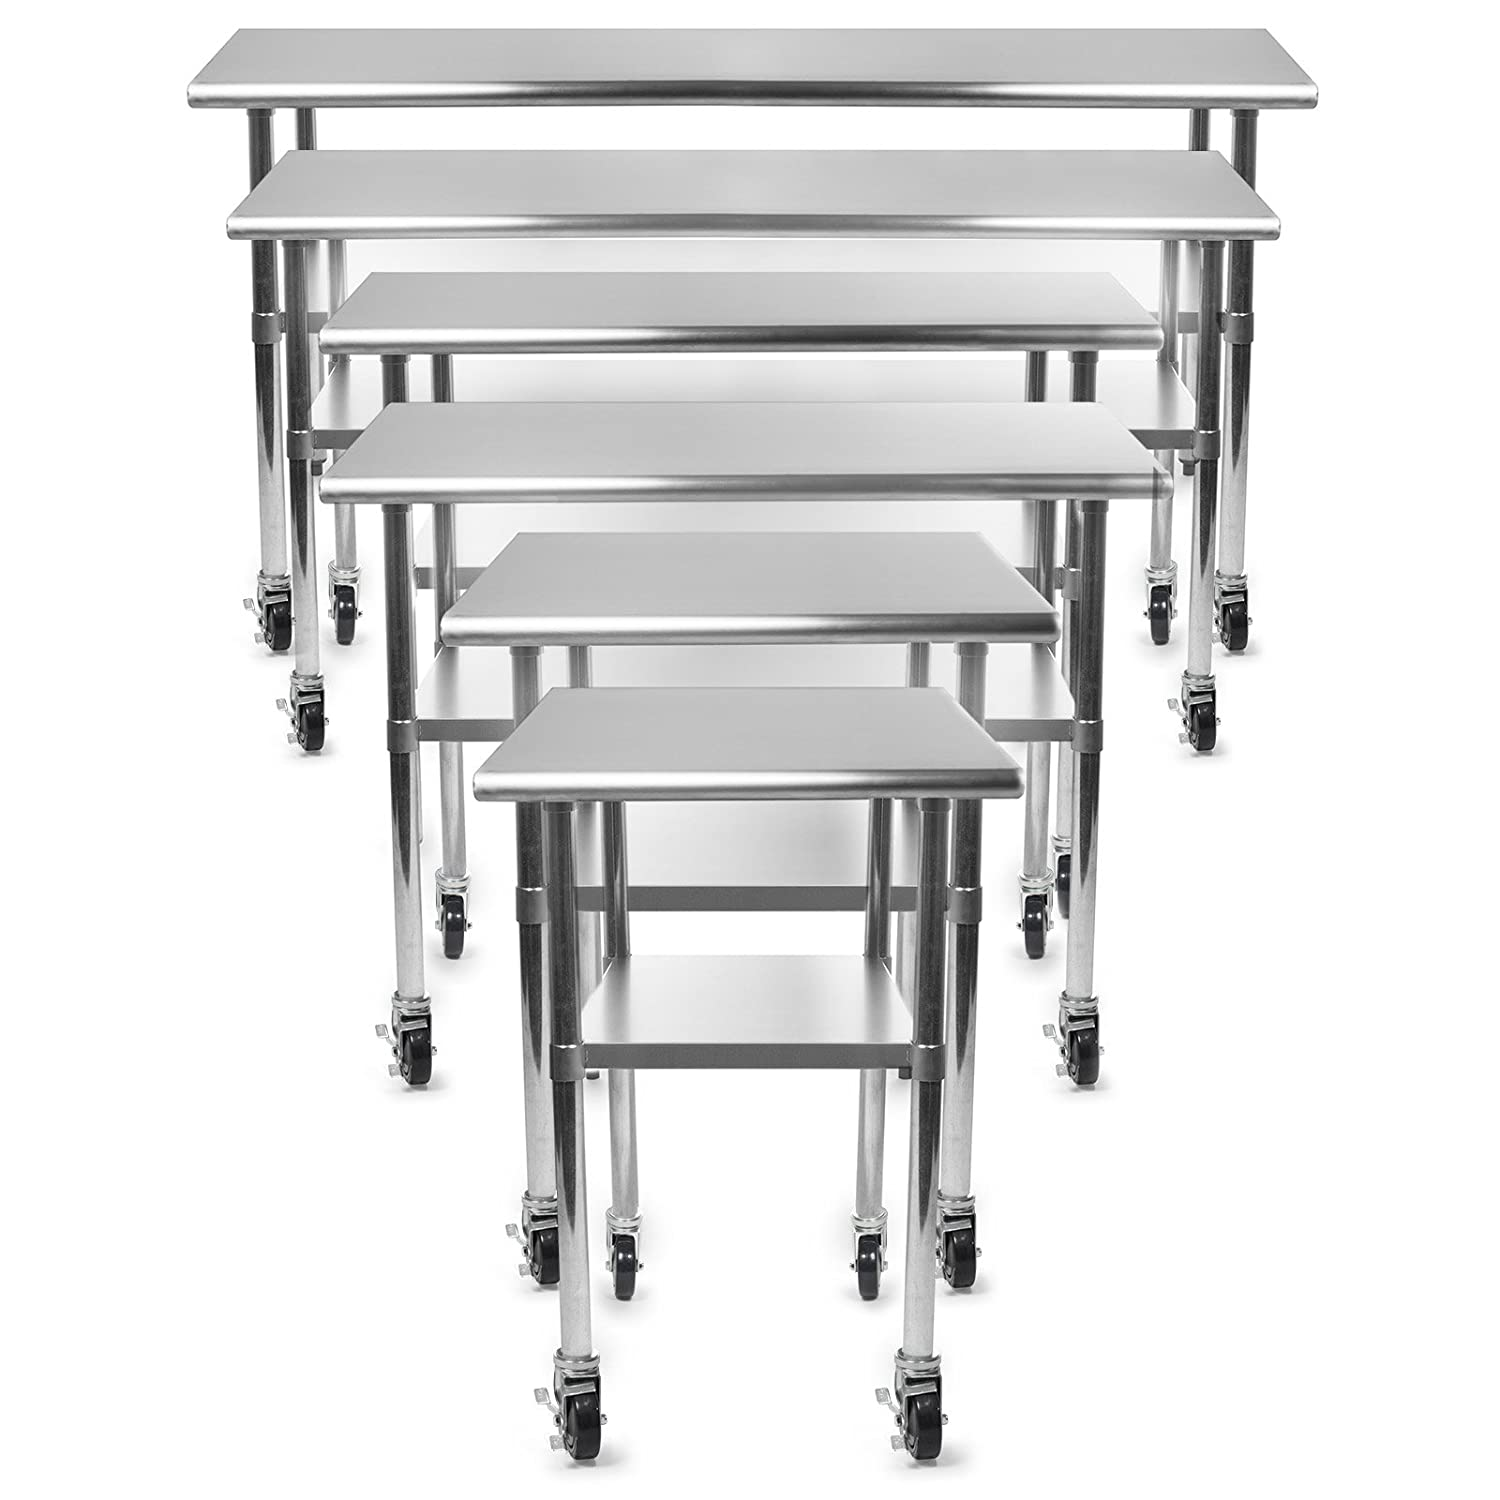 Amazoncom Gridmann NSF Stainless Steel Commercial Kitchen Prep - Stainless steel work table on casters